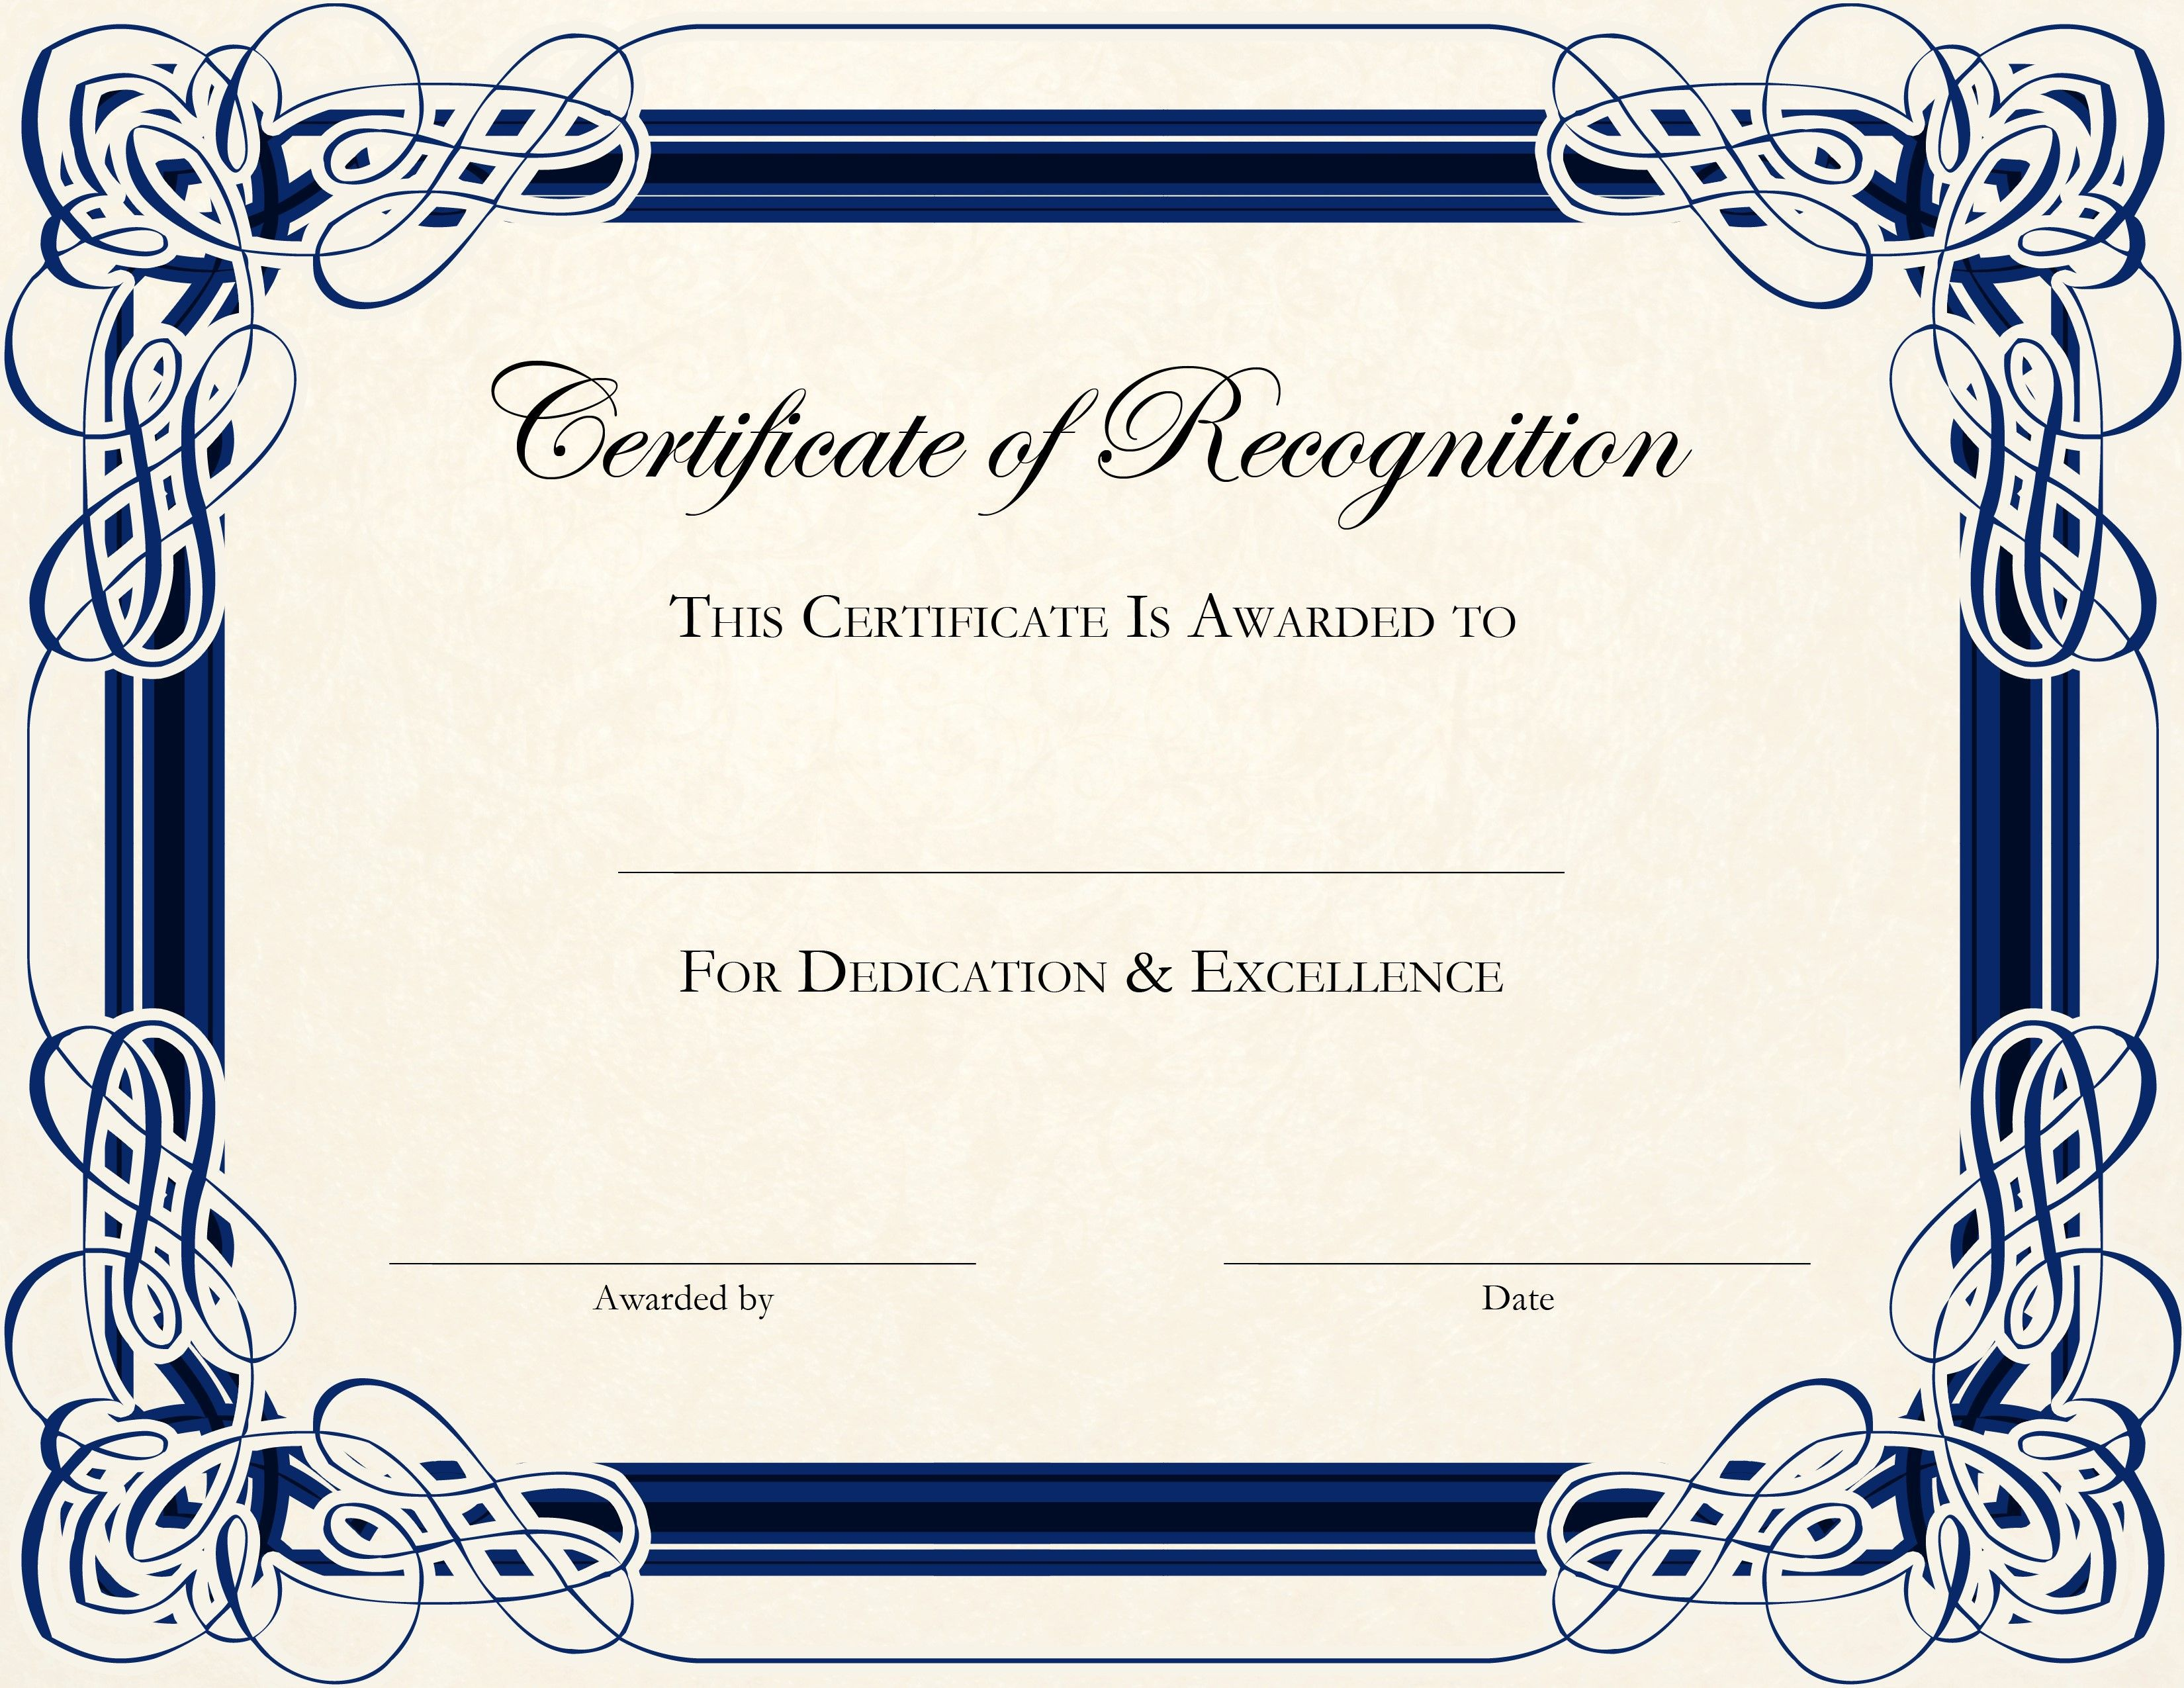 002 Stunning Certificate Of Recognition Template Word Highest Quality  Award Microsoft FreeFull